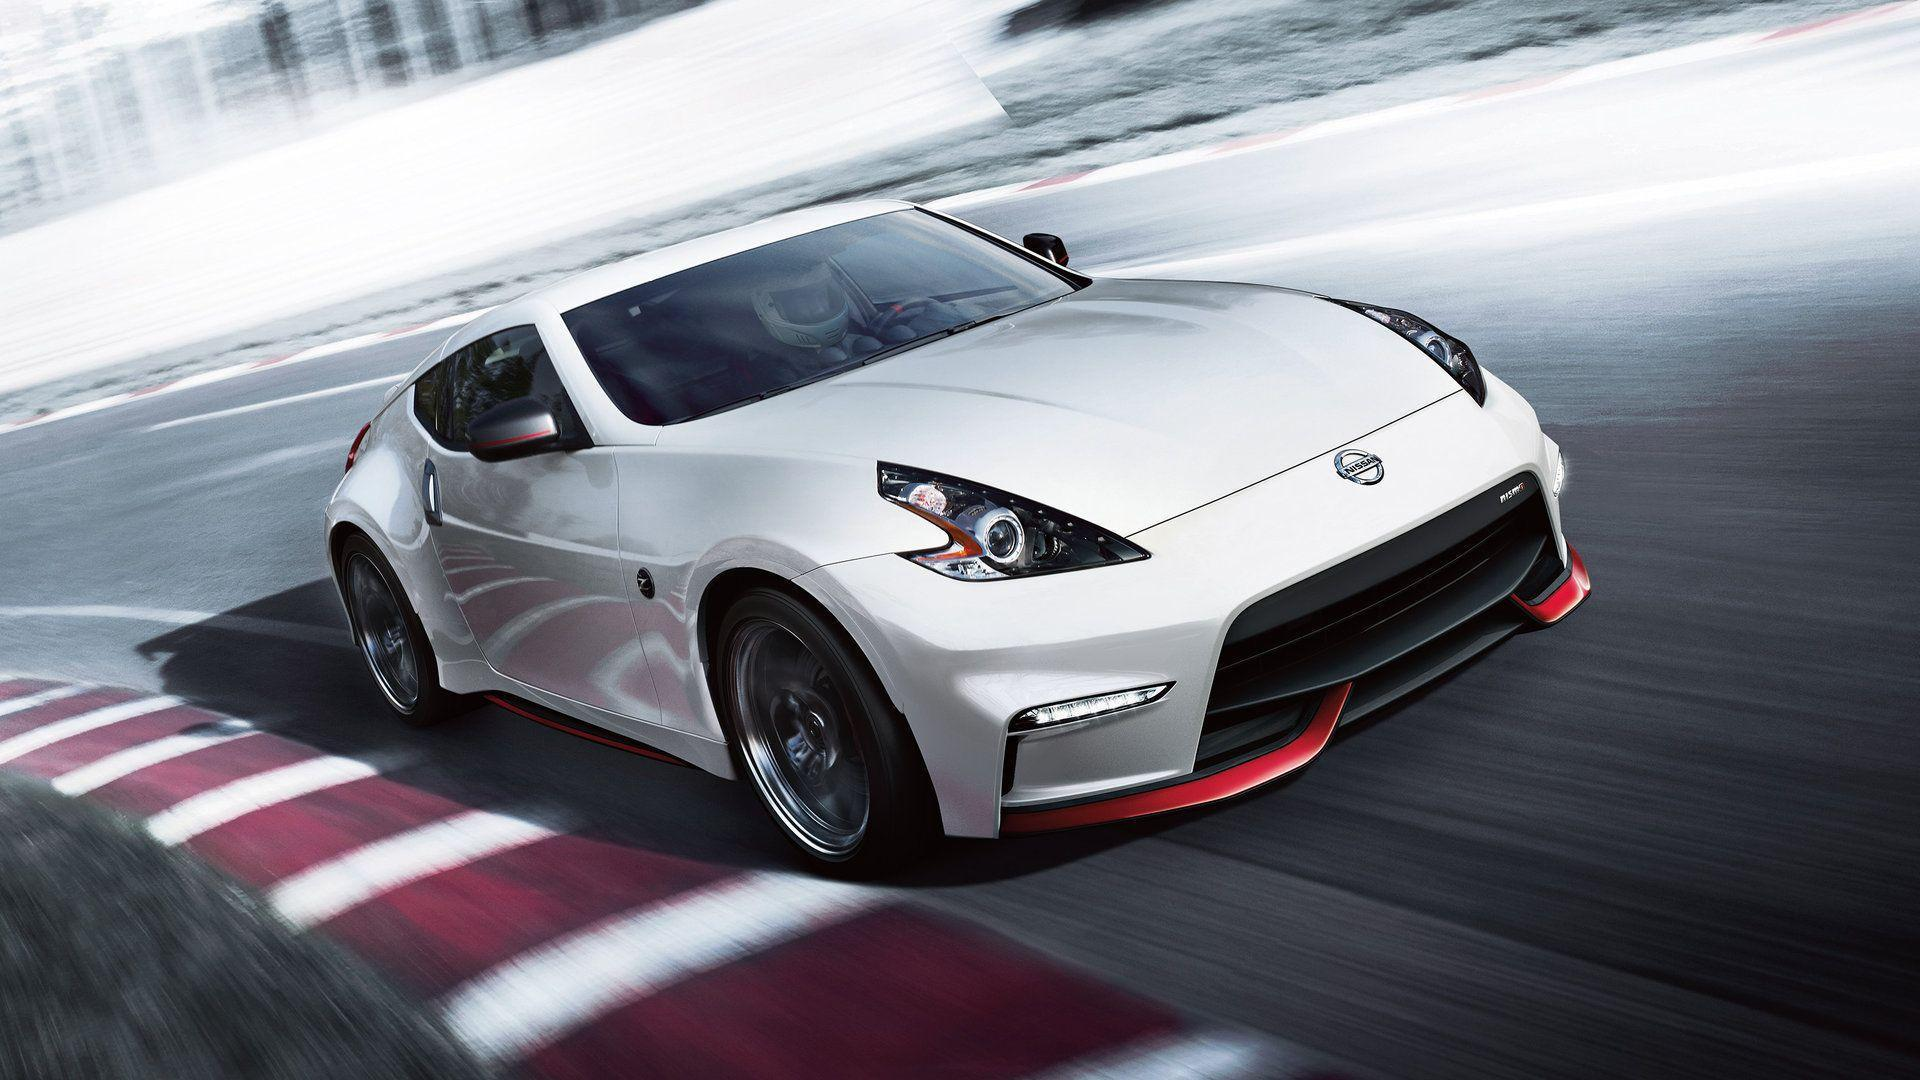 2016 Nissan 370z Wallpapers Wallpaper Cave